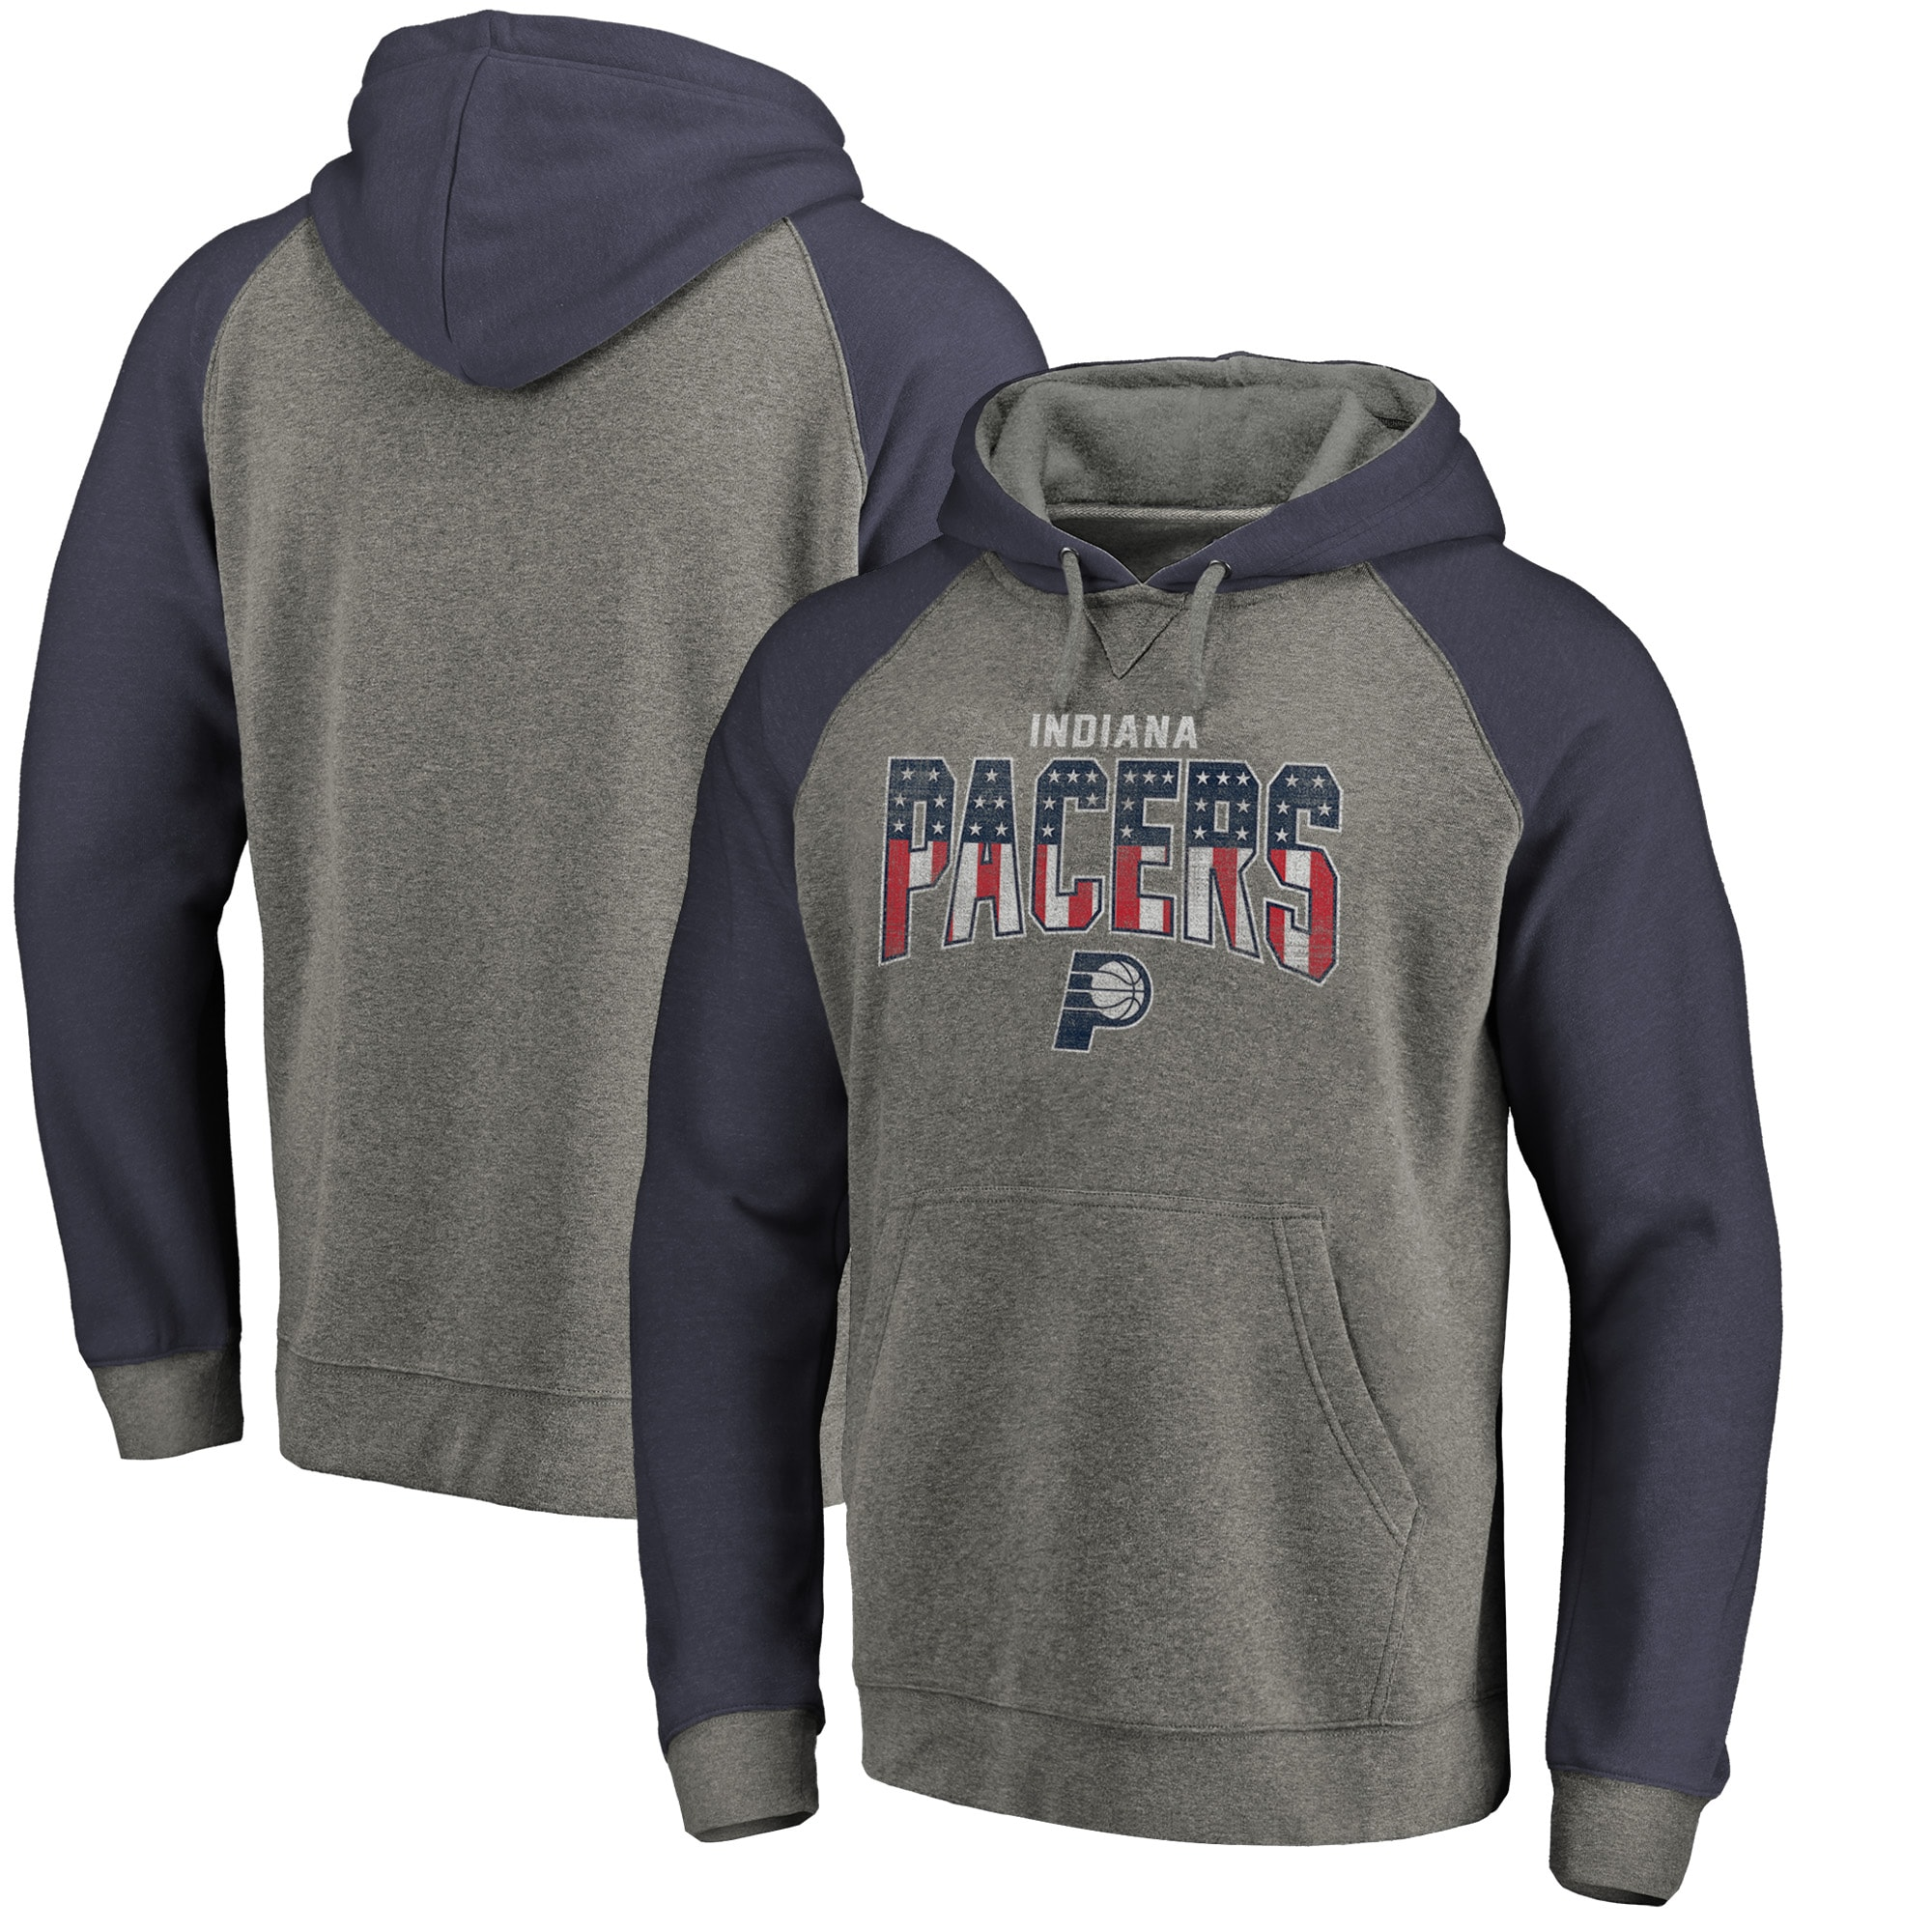 Indiana Pacers Fanatics Branded Freedom Tri-Blend Pullover Hoodie - Heathered Gray